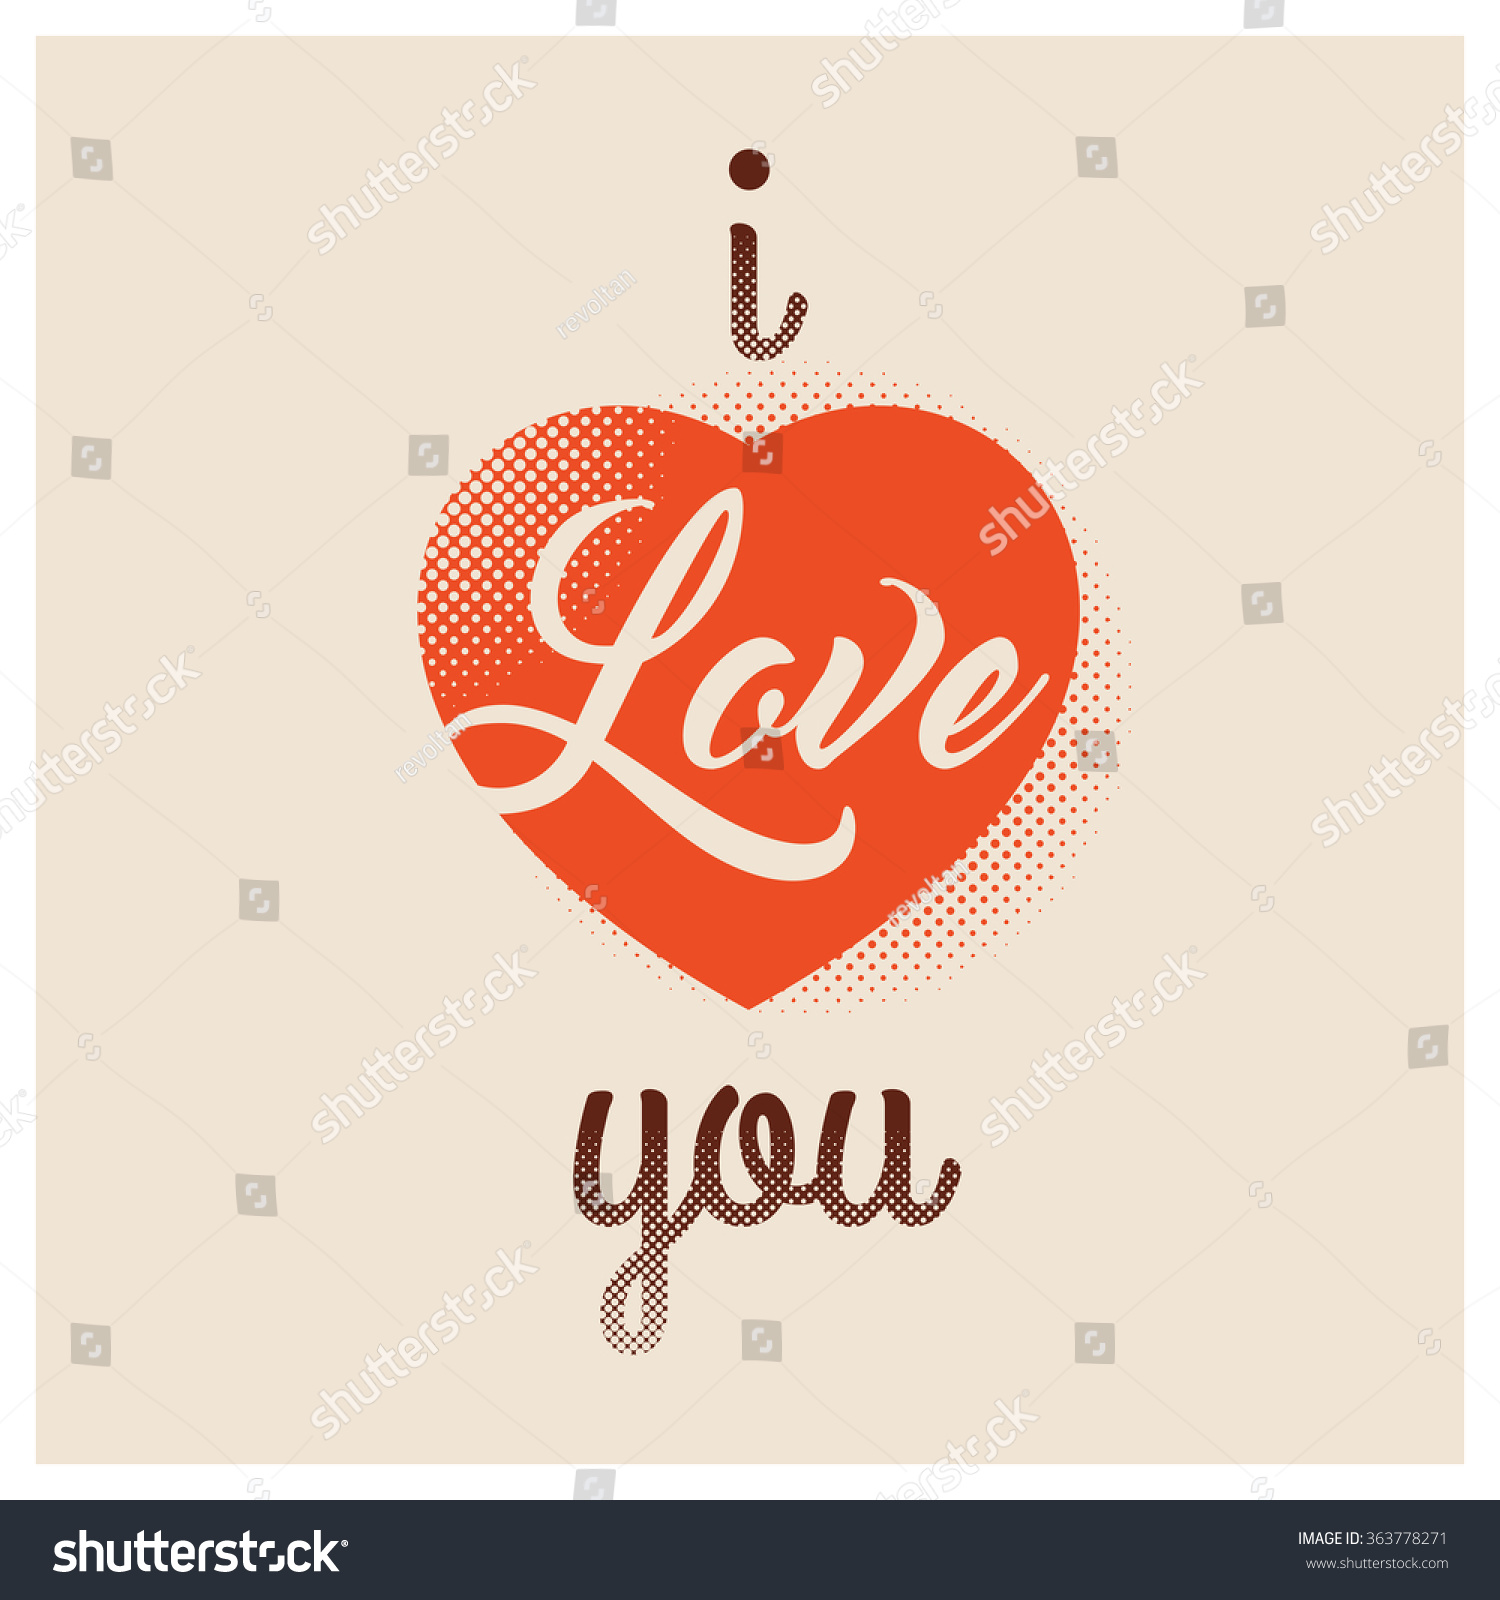 Love you valentine greeting words stock vector 363778271 shutterstock valentine greeting words kristyandbryce Images